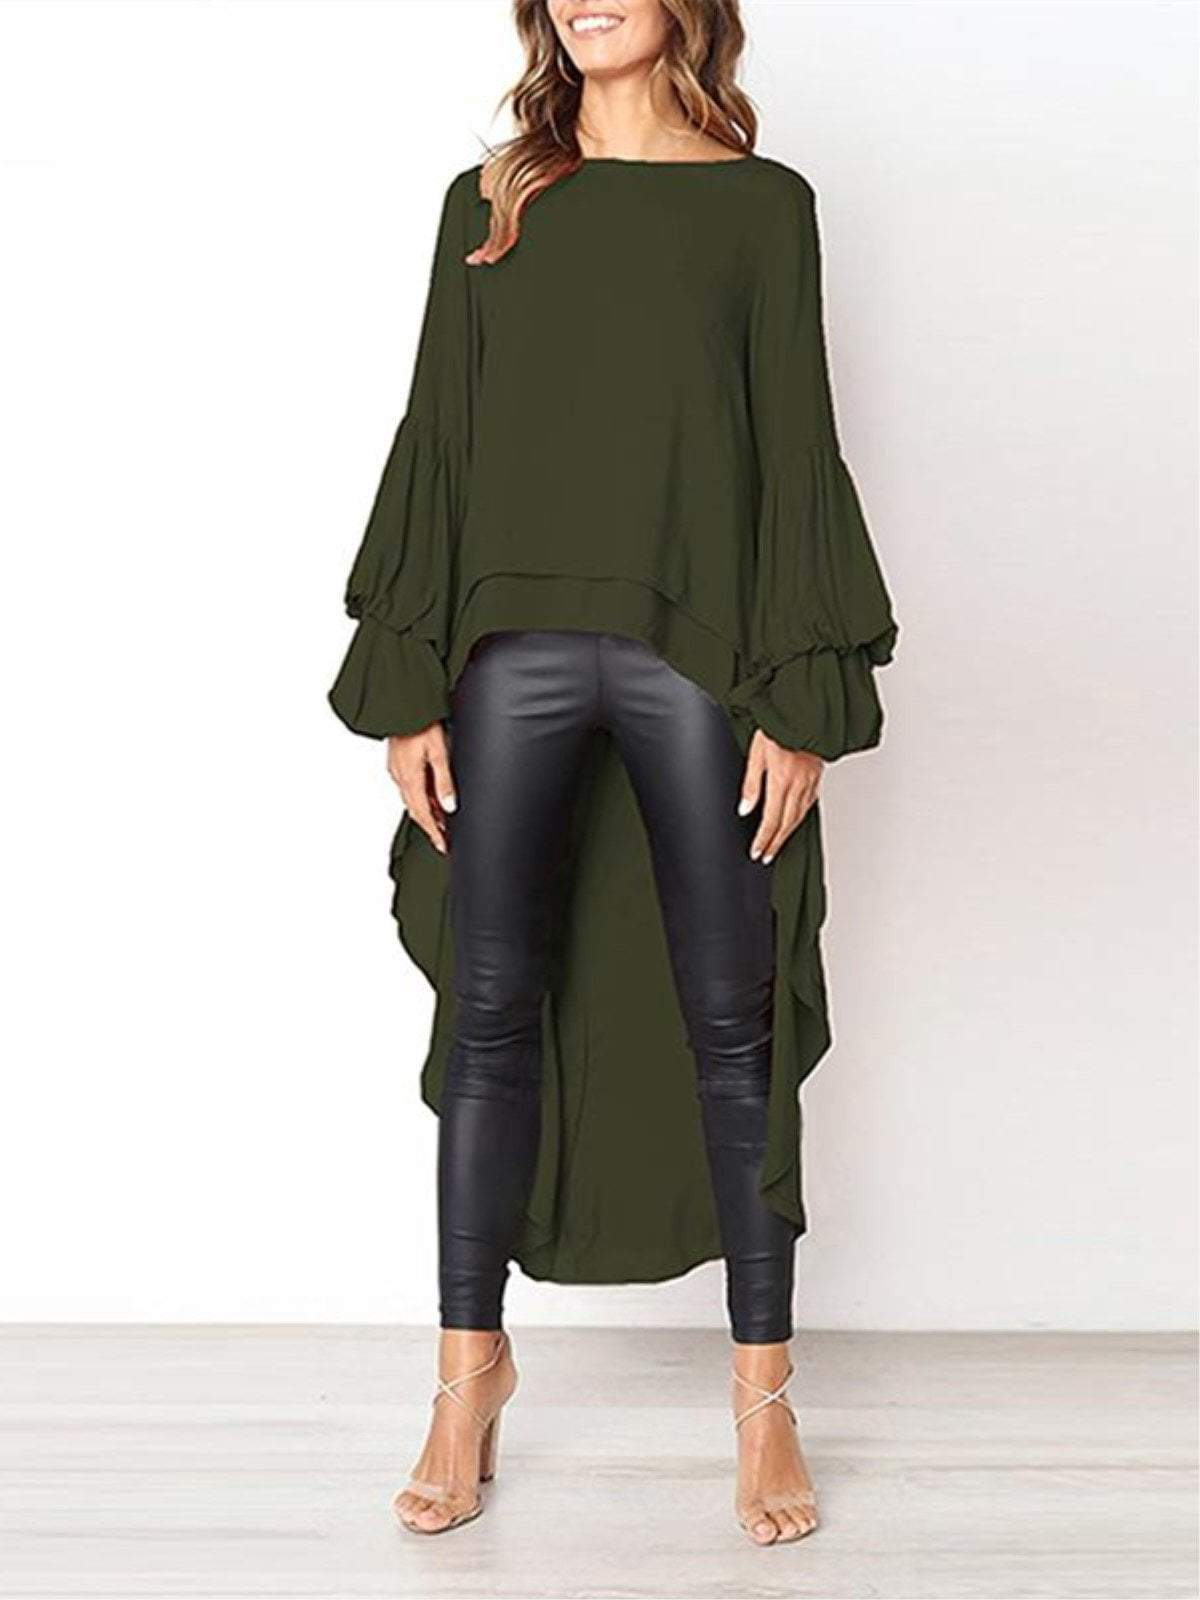 lezeda.com Tops Army Green / S Plus Size Casual Asymmetrical Ruffled Long Sleeve Solid Blouses